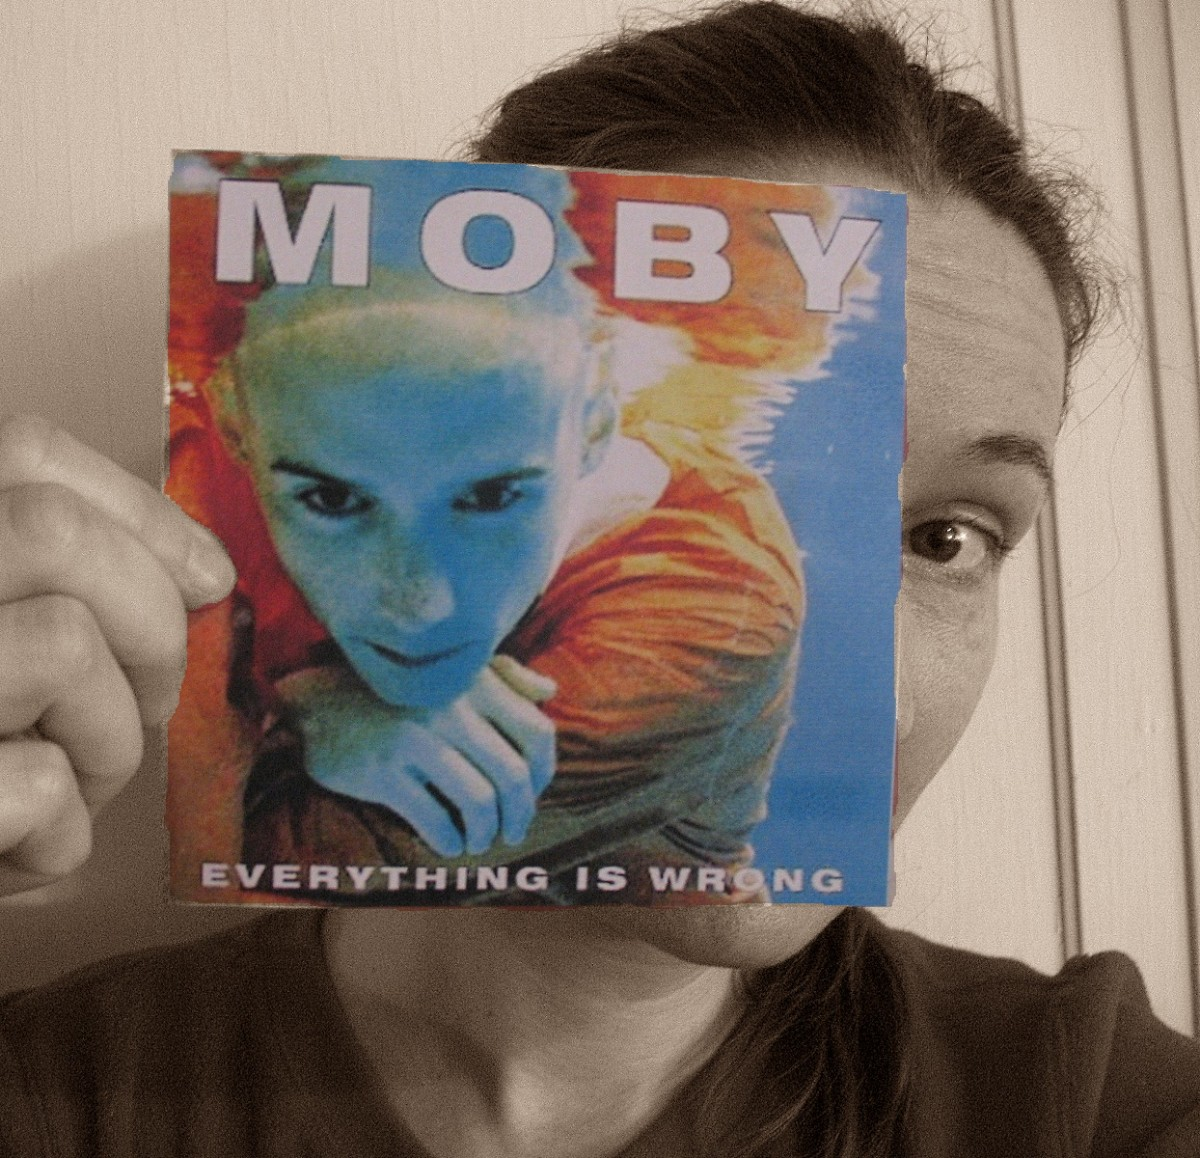 Moby's essays changed my life